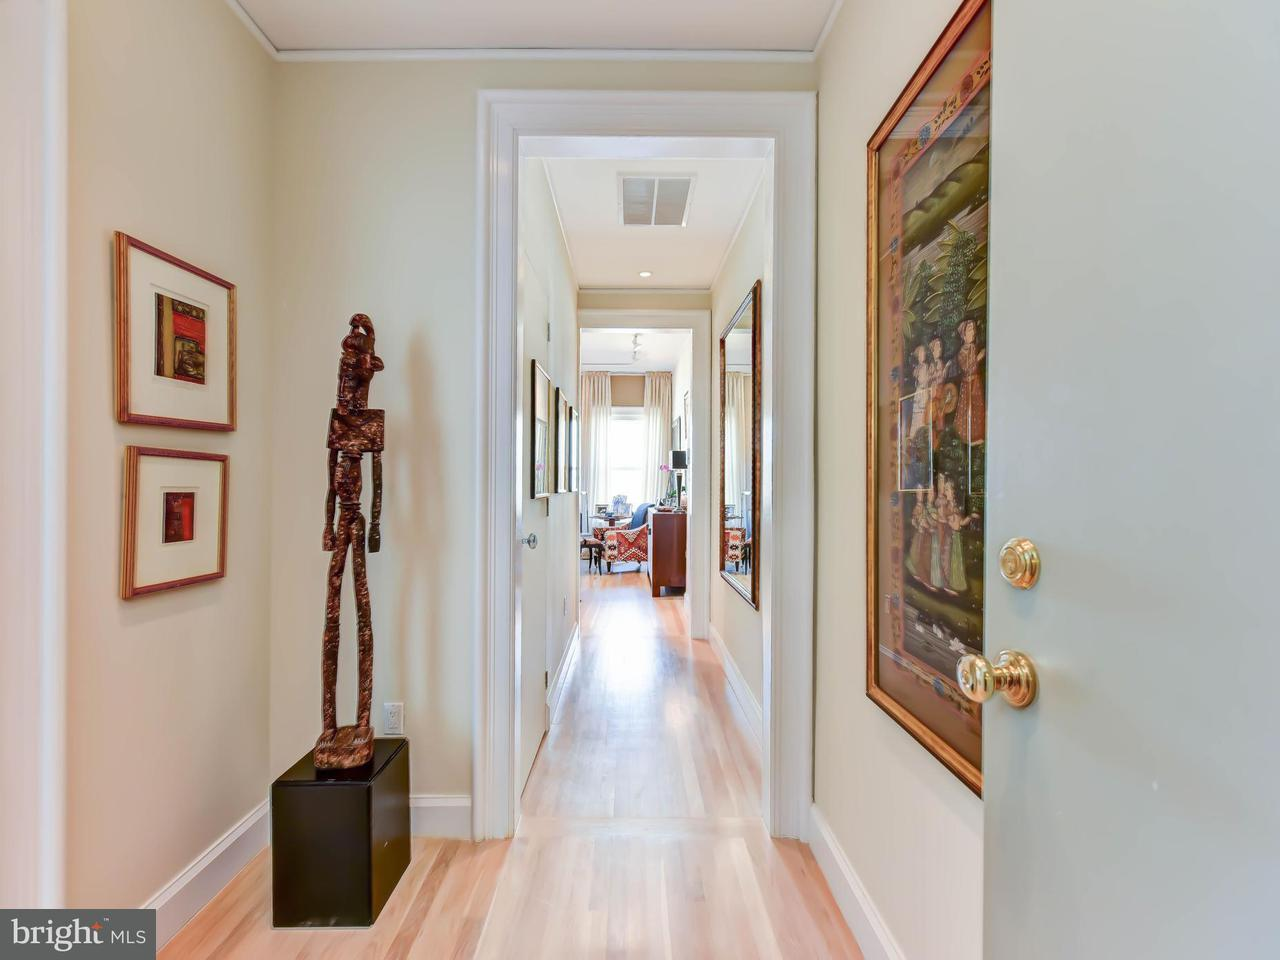 Additional photo for property listing at 2022 Columbia Rd Nw #704 2022 Columbia Rd Nw #704 Washington, コロンビア特別区 20009 アメリカ合衆国